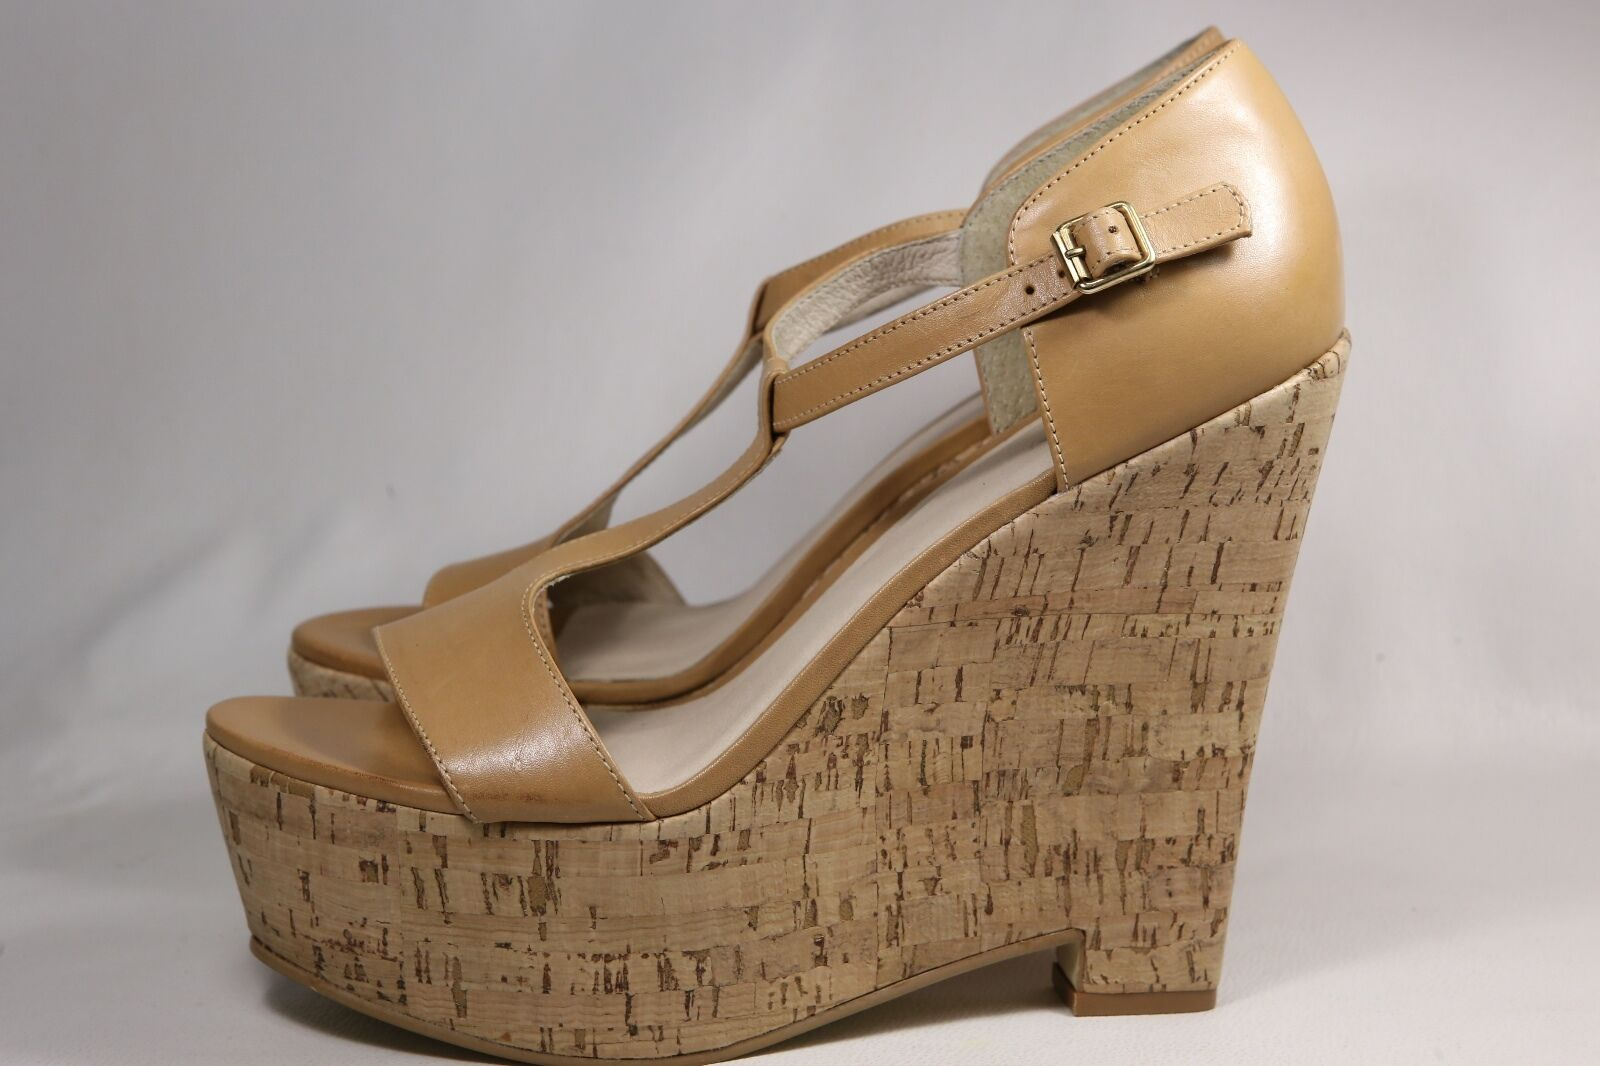 Elizabeth Wedge & James Nude/Tan Leather Wedge Elizabeth Platform T-Strap Sandals 9.5